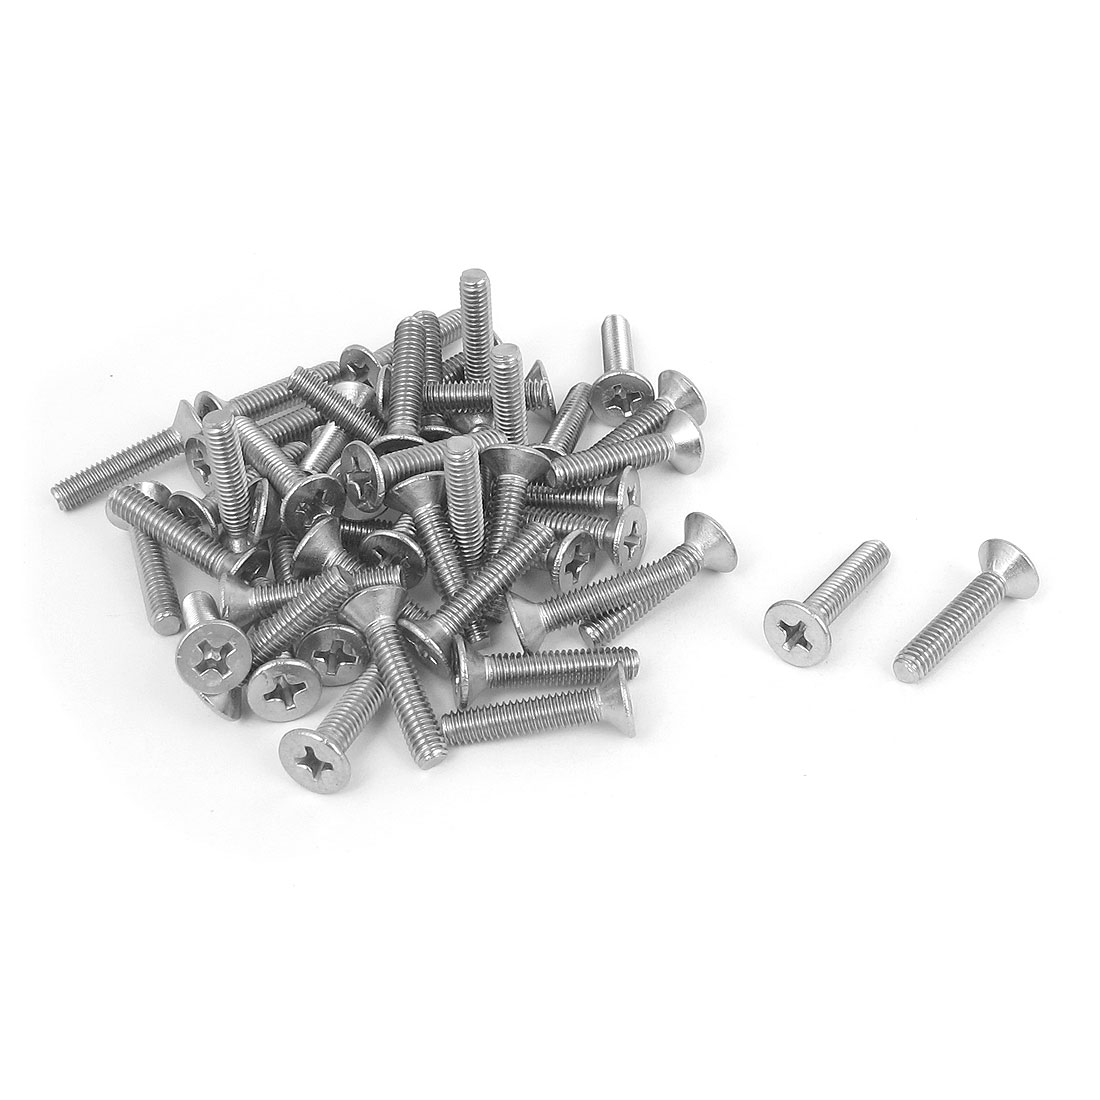 M4 x 20mm Metric Phillips Flat Head Countersunk Bolts Machine Screws 50pcs